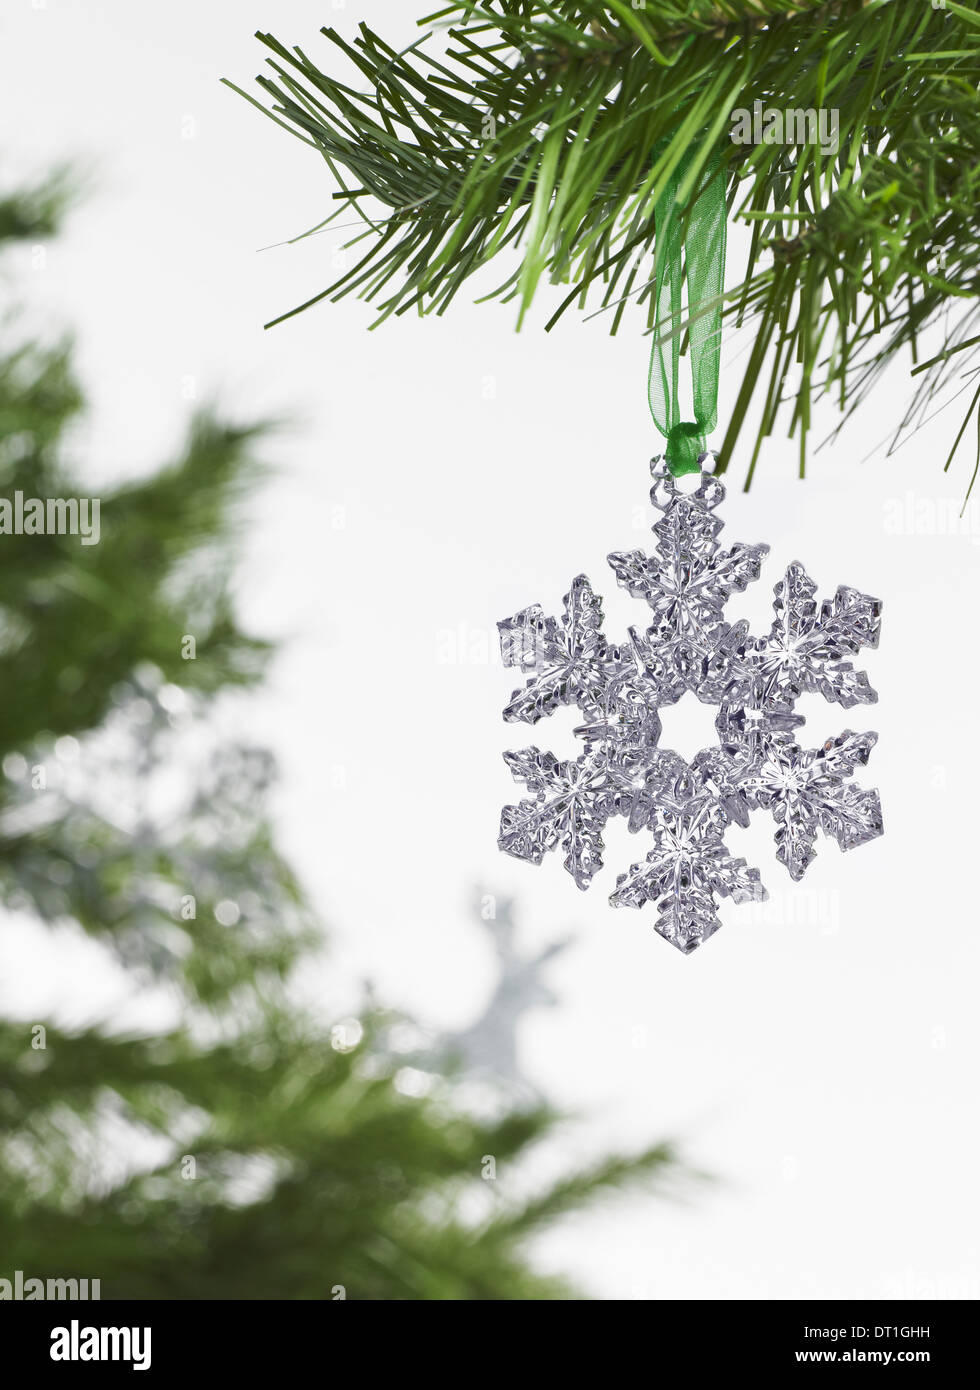 Green leaf foliage and decorations A pine tree branch with green needles Christmas decorations A silver icicle shape - Stock Image